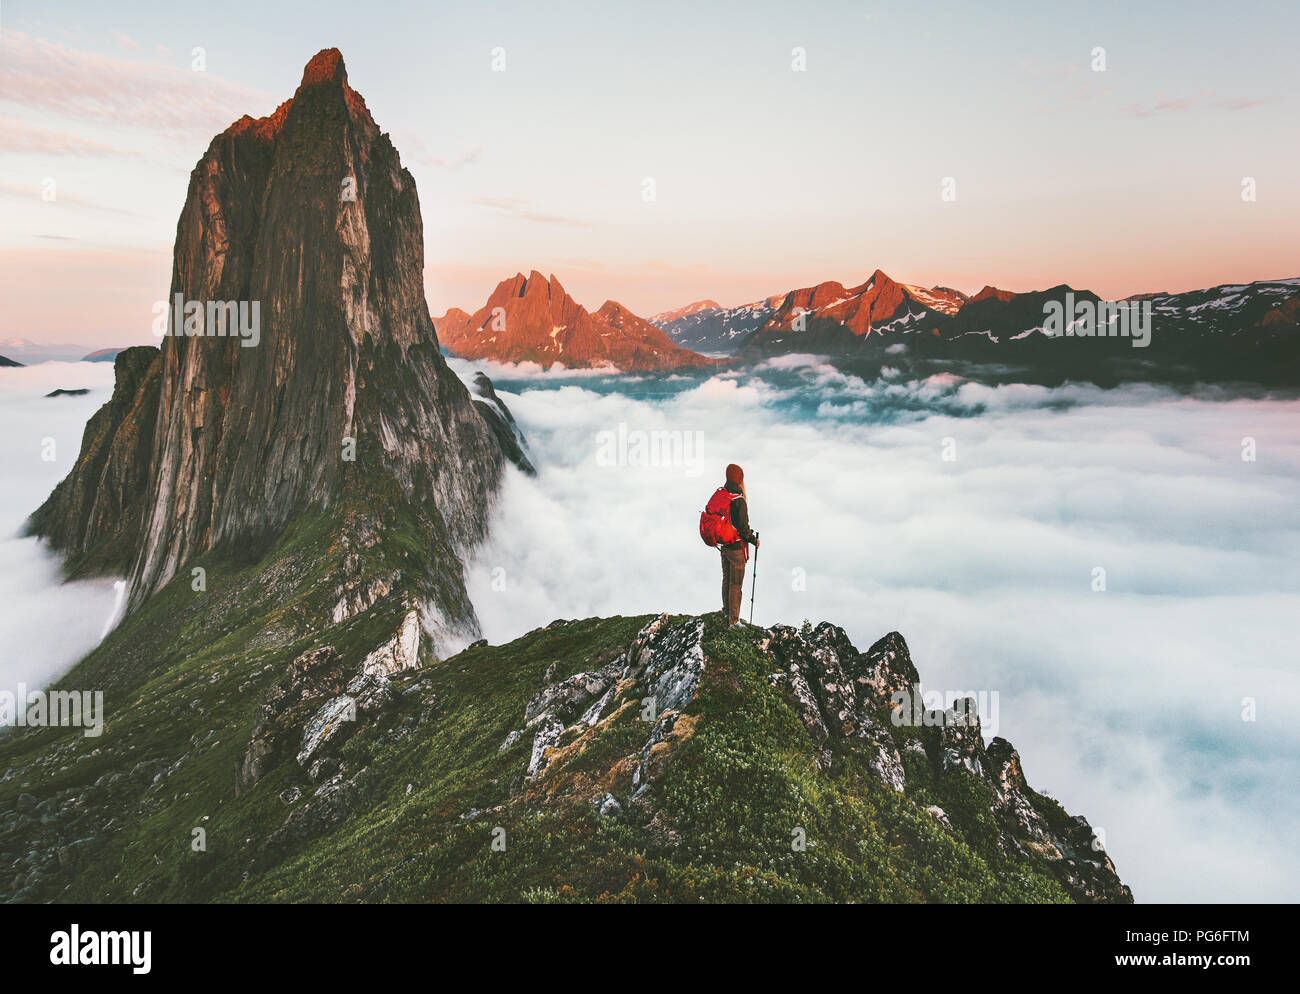 Traveler on cliff over clouds exploring sunset Segla mountain alone hiking adventure journey outdoor Norway vacations traveling lifestyle weekend geta - Stock Image